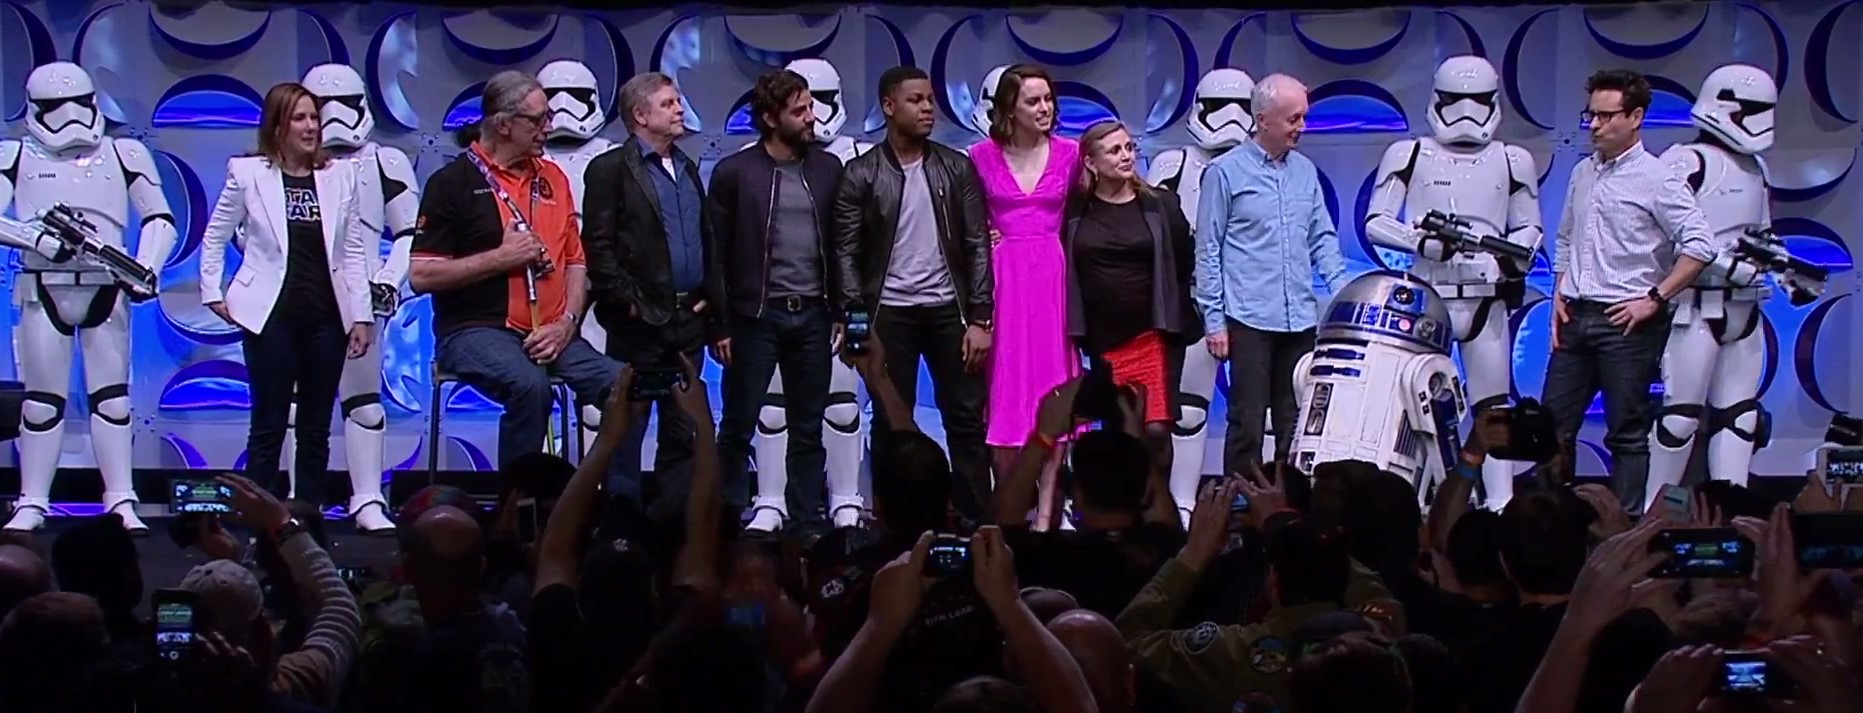 (From l to r) Kathleen Kennedy, Peter Mayhew, Mark Hamill, Oscar Isaac, John Boyega, Daisy Ridley, Carrie FIsher, Anthony Daniels and J.J. Abrams about to unleash the second trailer for Episode VII, at Star Wars Celebration 2015.